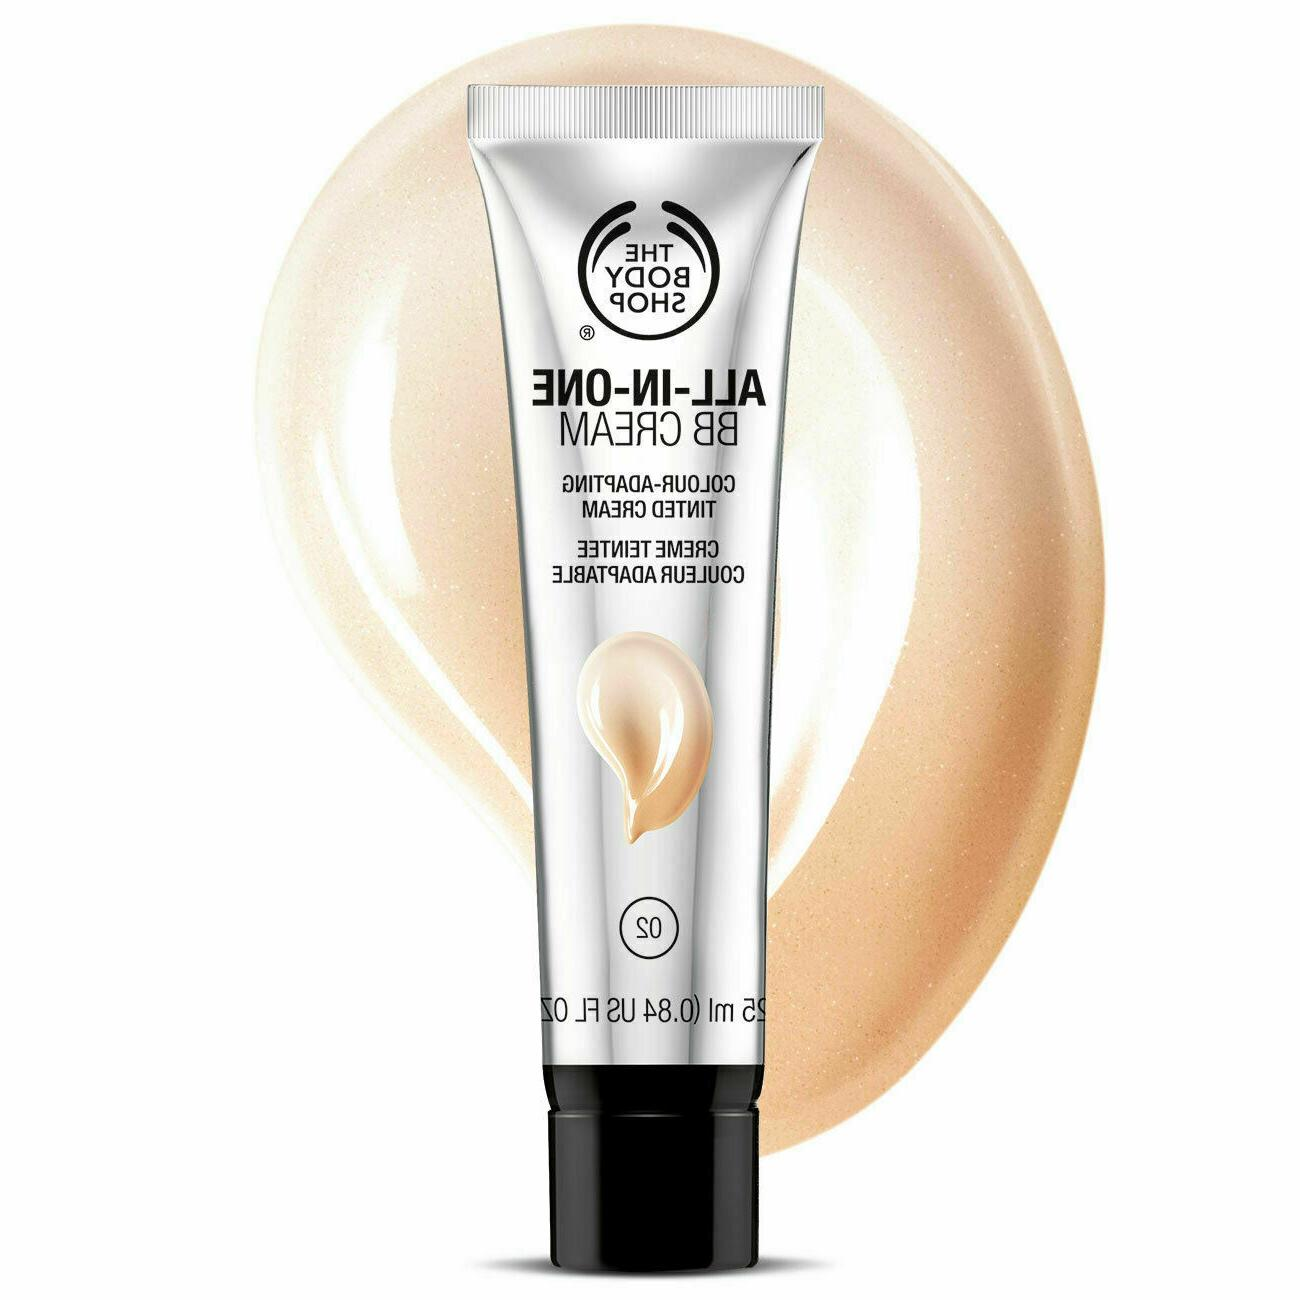 The Body Shop ALL IN ONE BB Cream Shade 02 NEW